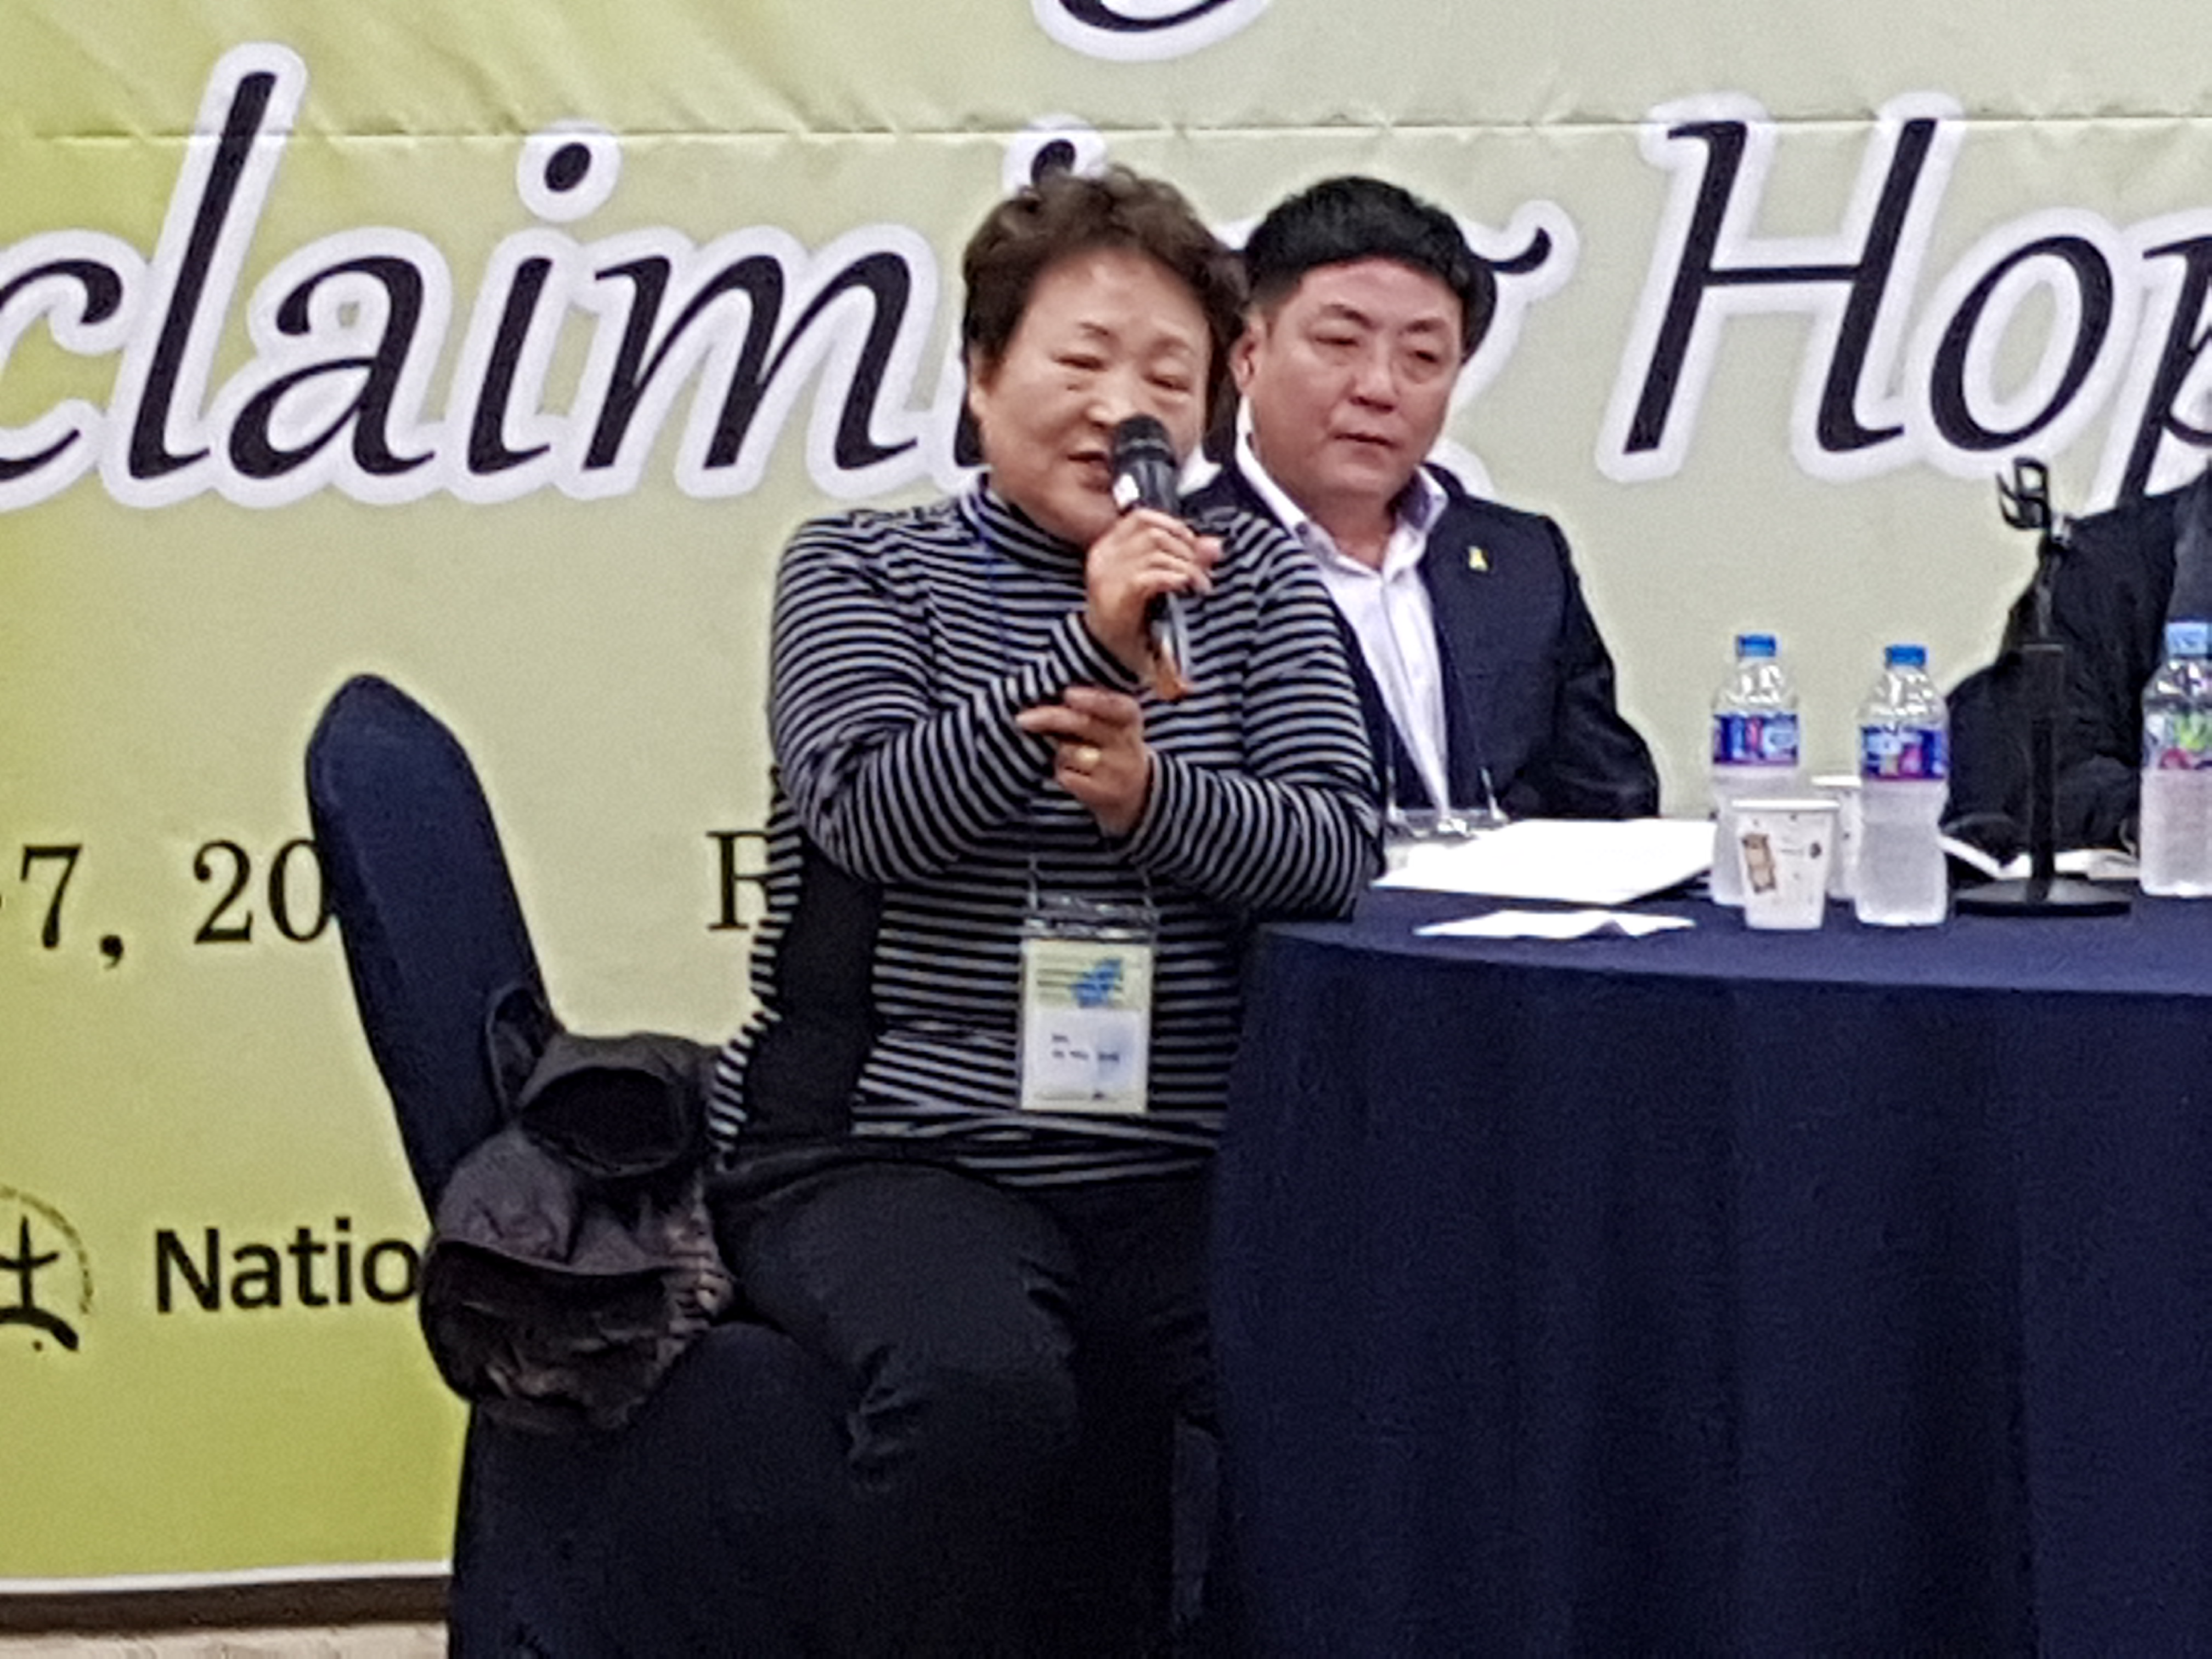 Ms. Ko Wan Soon describes her experience during one of the Jeju massacres (1948-1954).